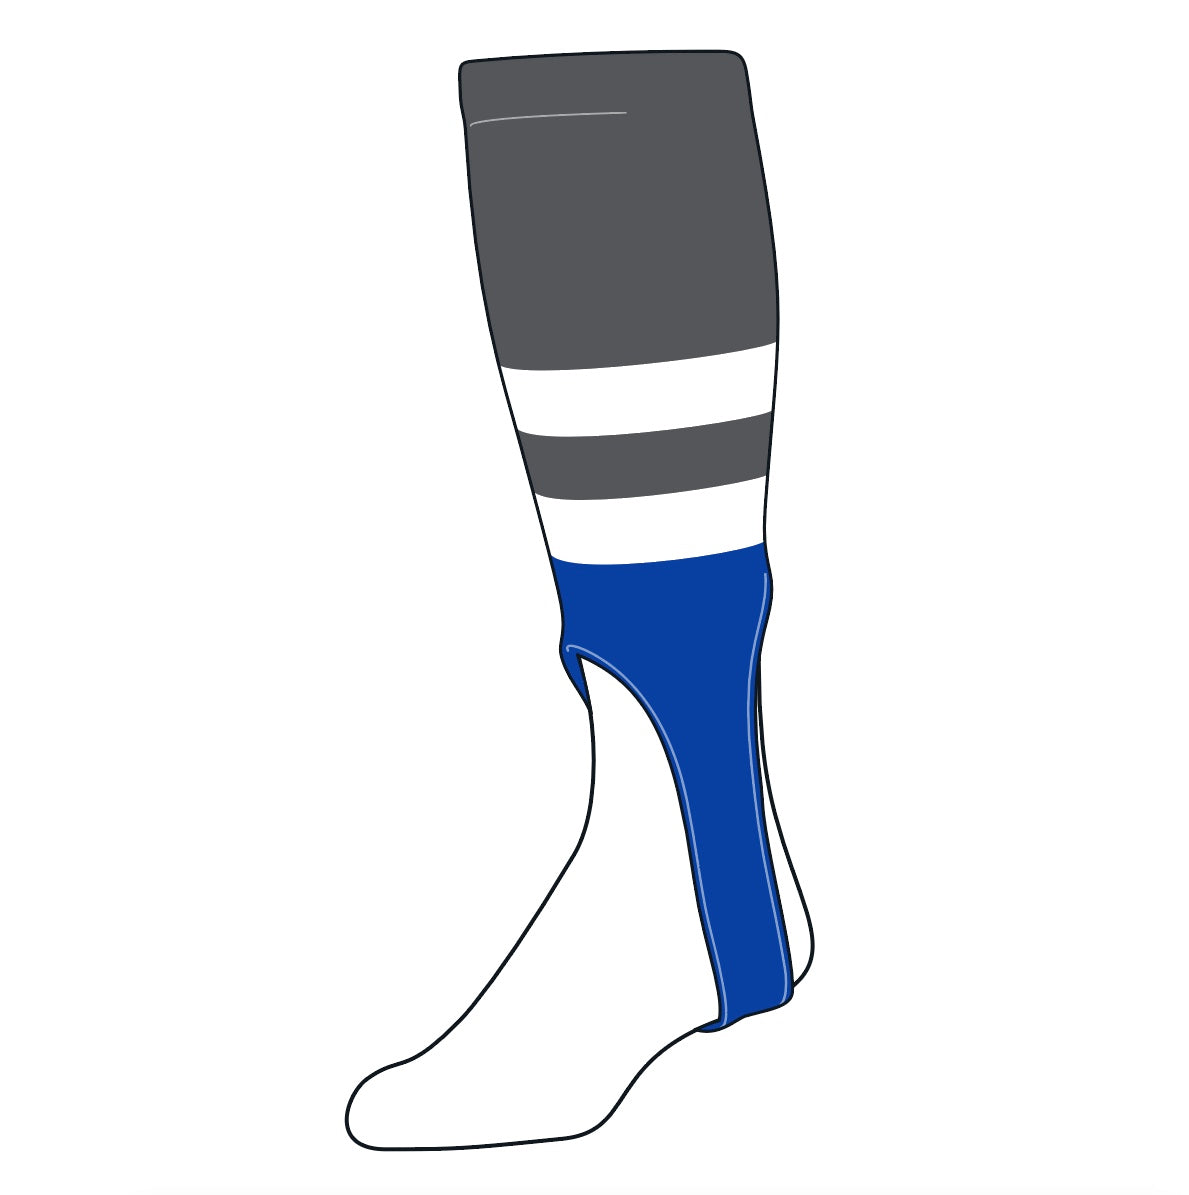 TCK Baseball Stirrups Medium (200G, 7in) Graphite, White, Royal